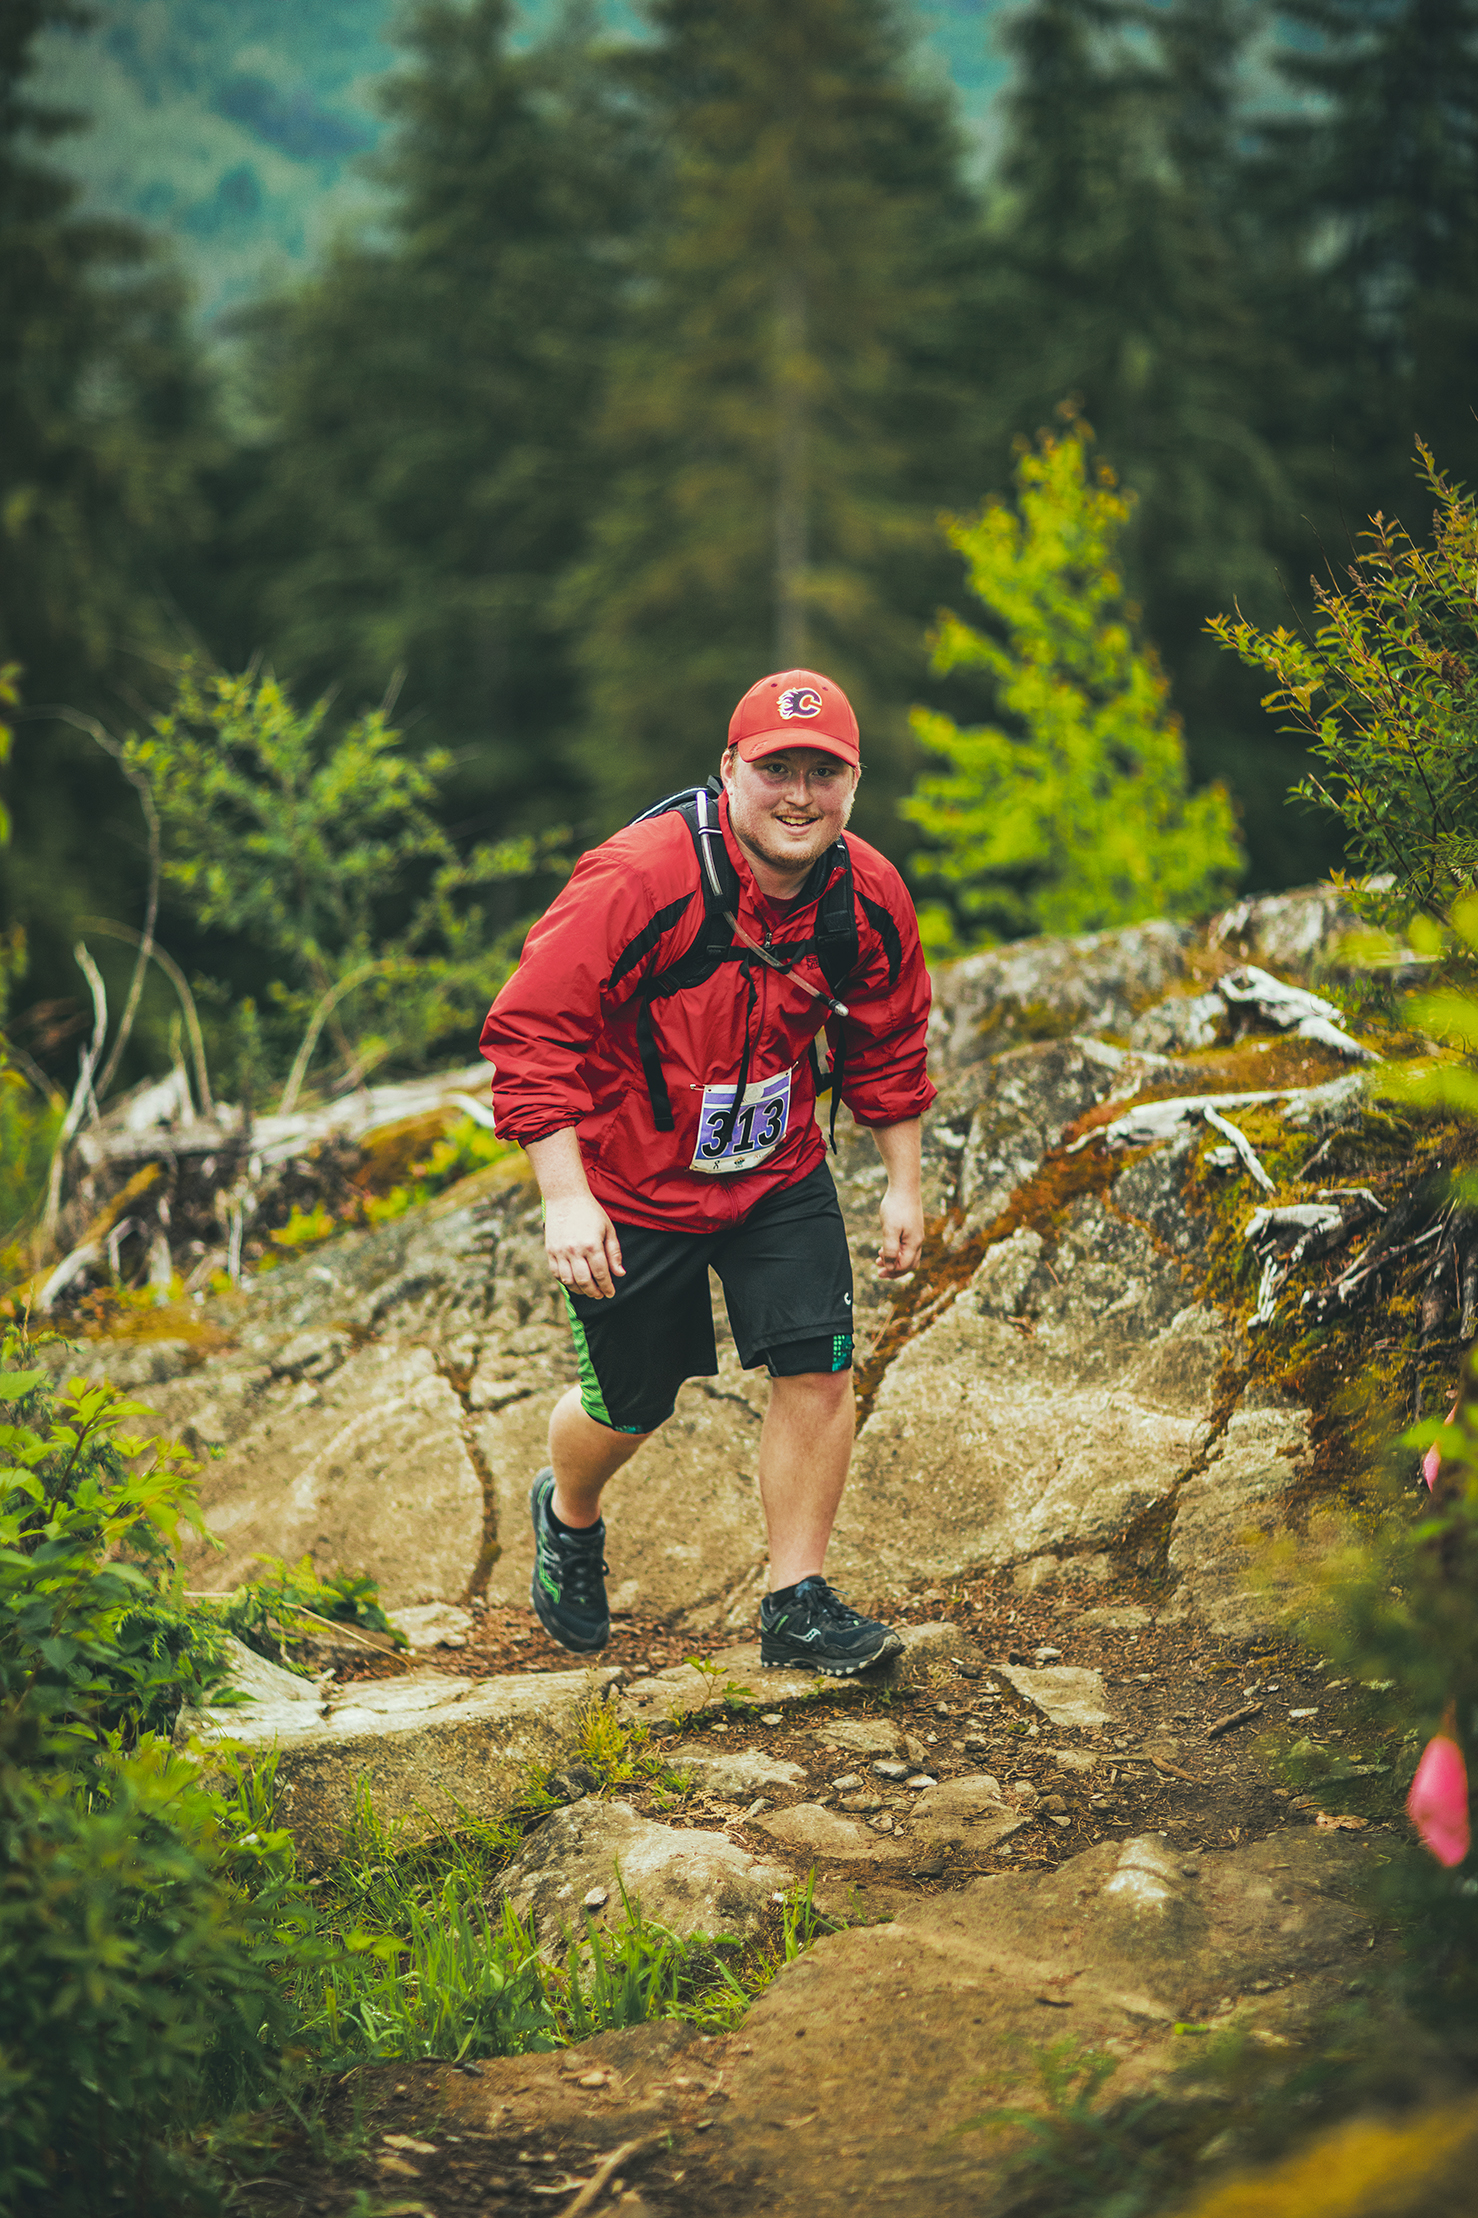 Fraser Valley Trail Races - Bear Mountain - IMG_1577 by Brice Ferre Studio - Vancouver Portrait Adventure and Athlete Photographer.jpg